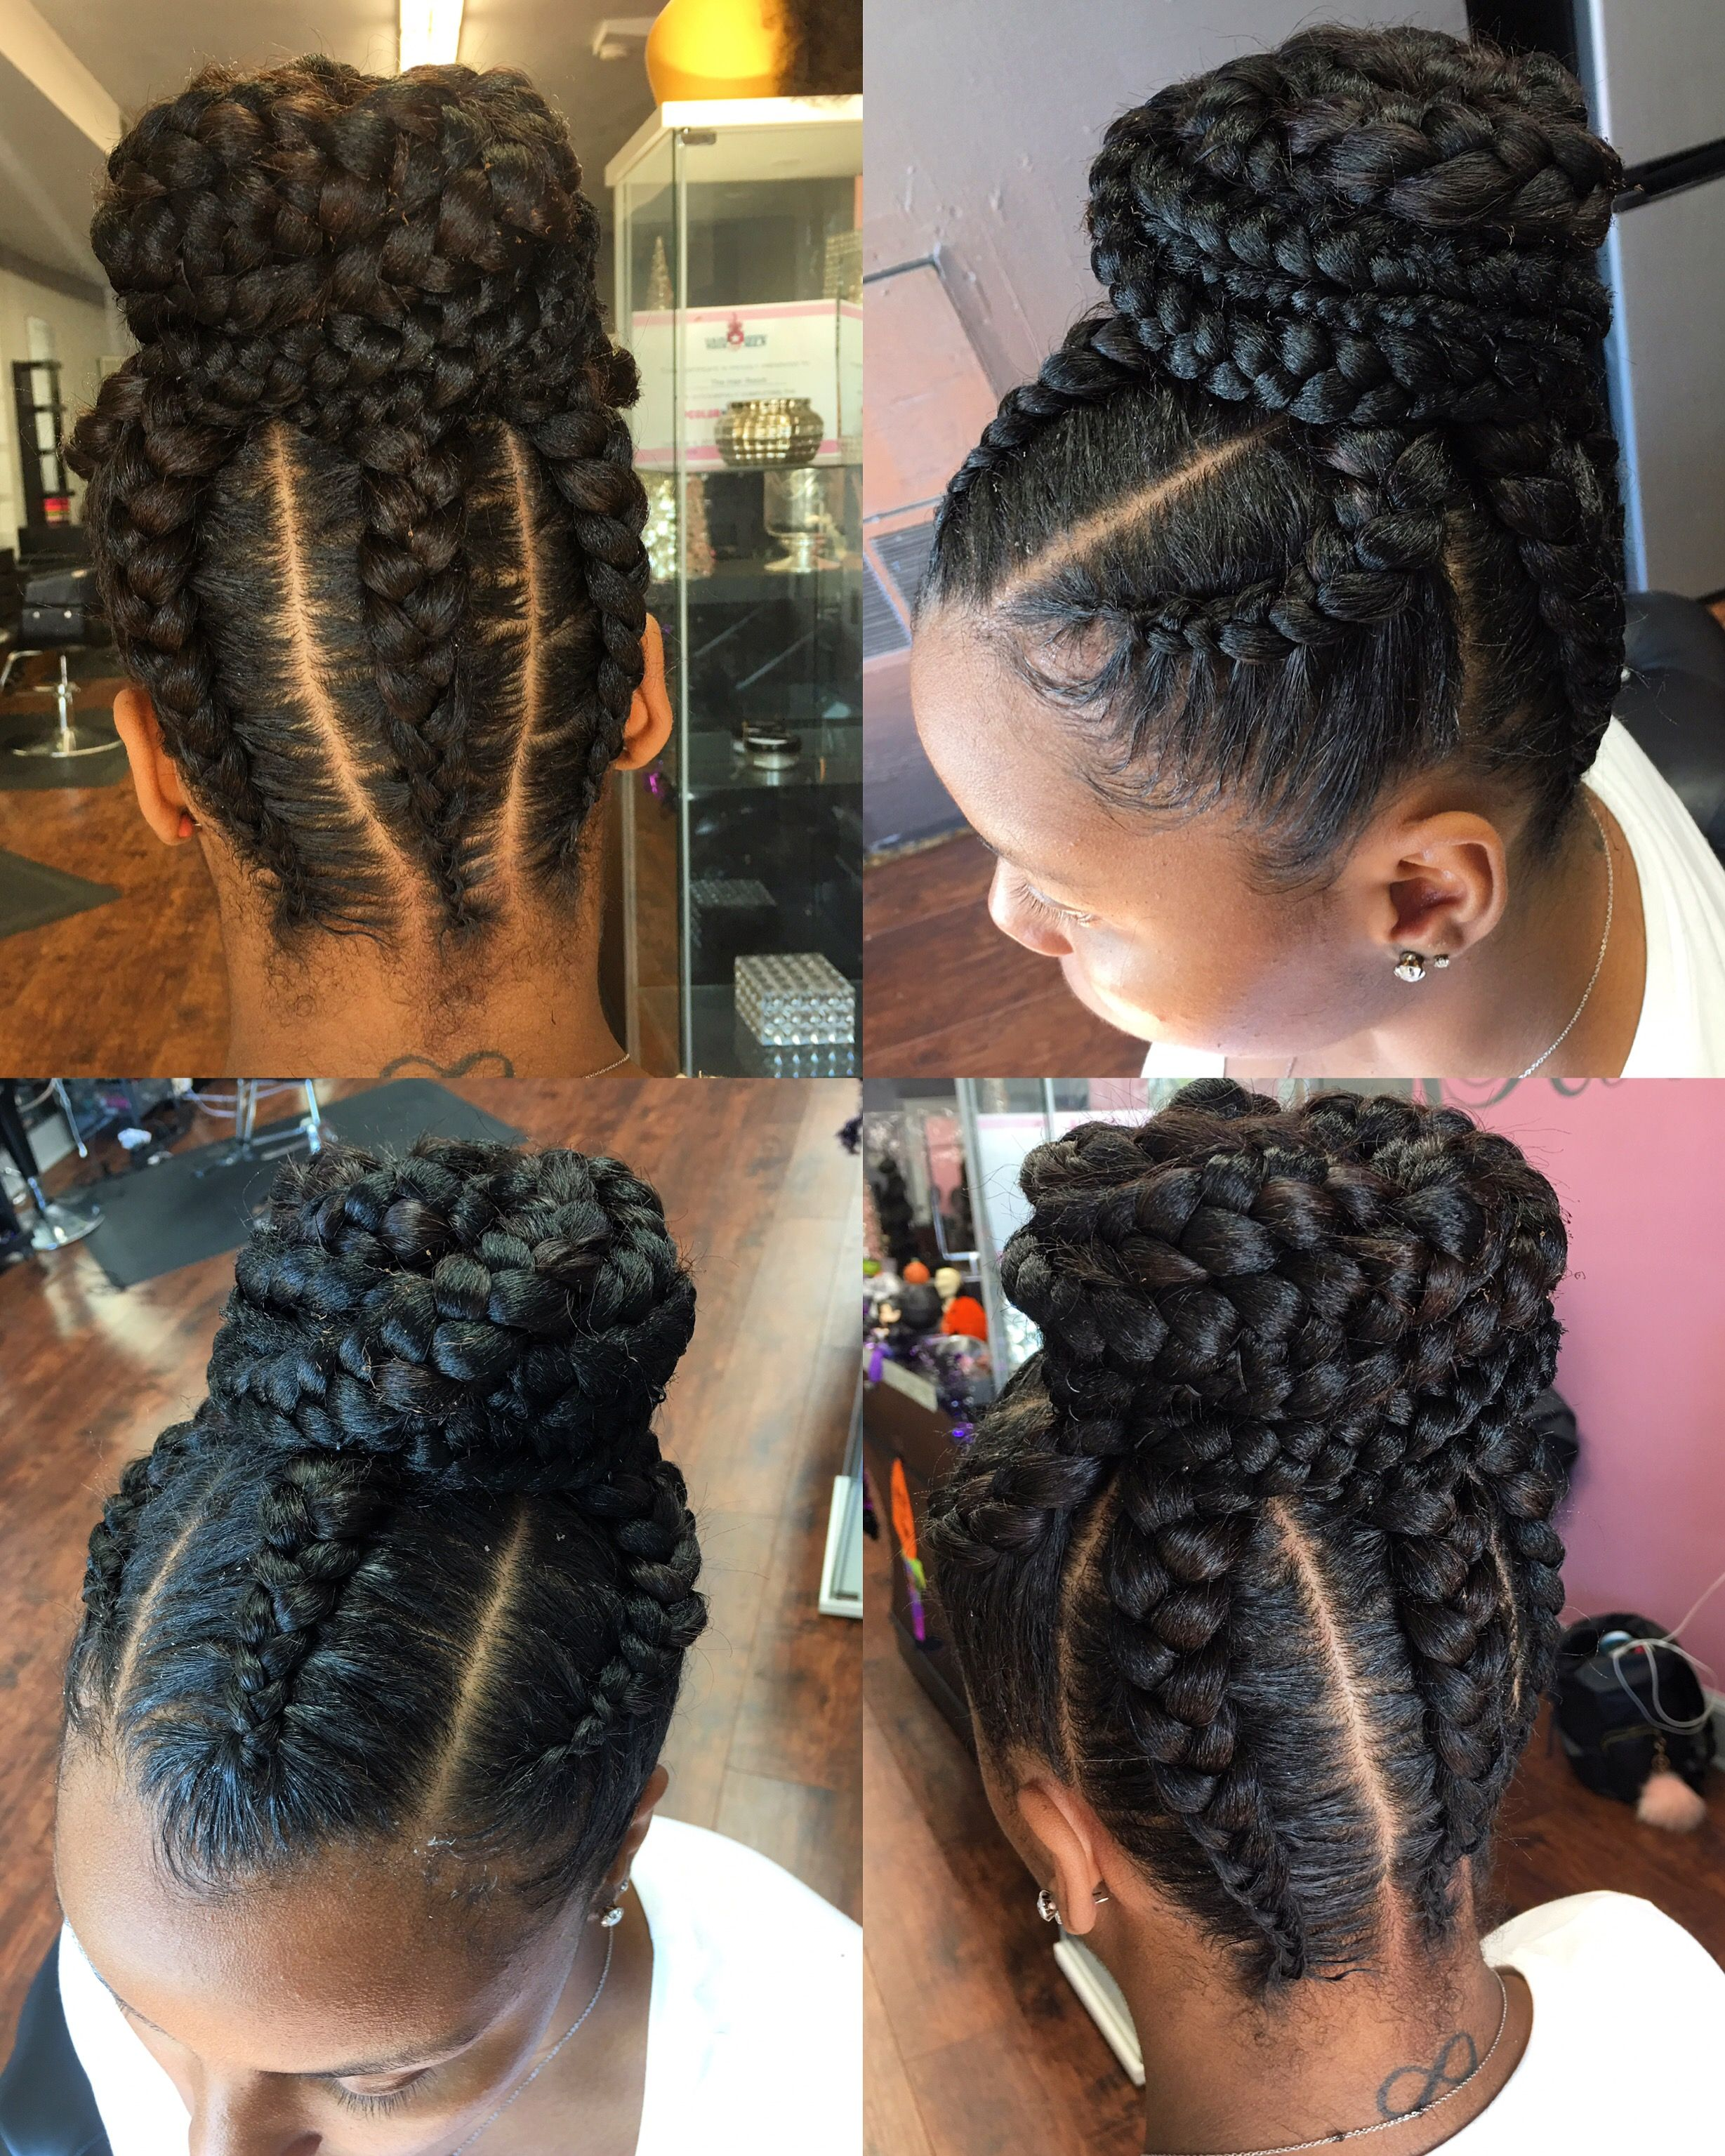 Get Into This Updo With Goddess Feedin Braids Natural Hair Styles Cornrow Updo Hairstyles Box Braids Hairstyles